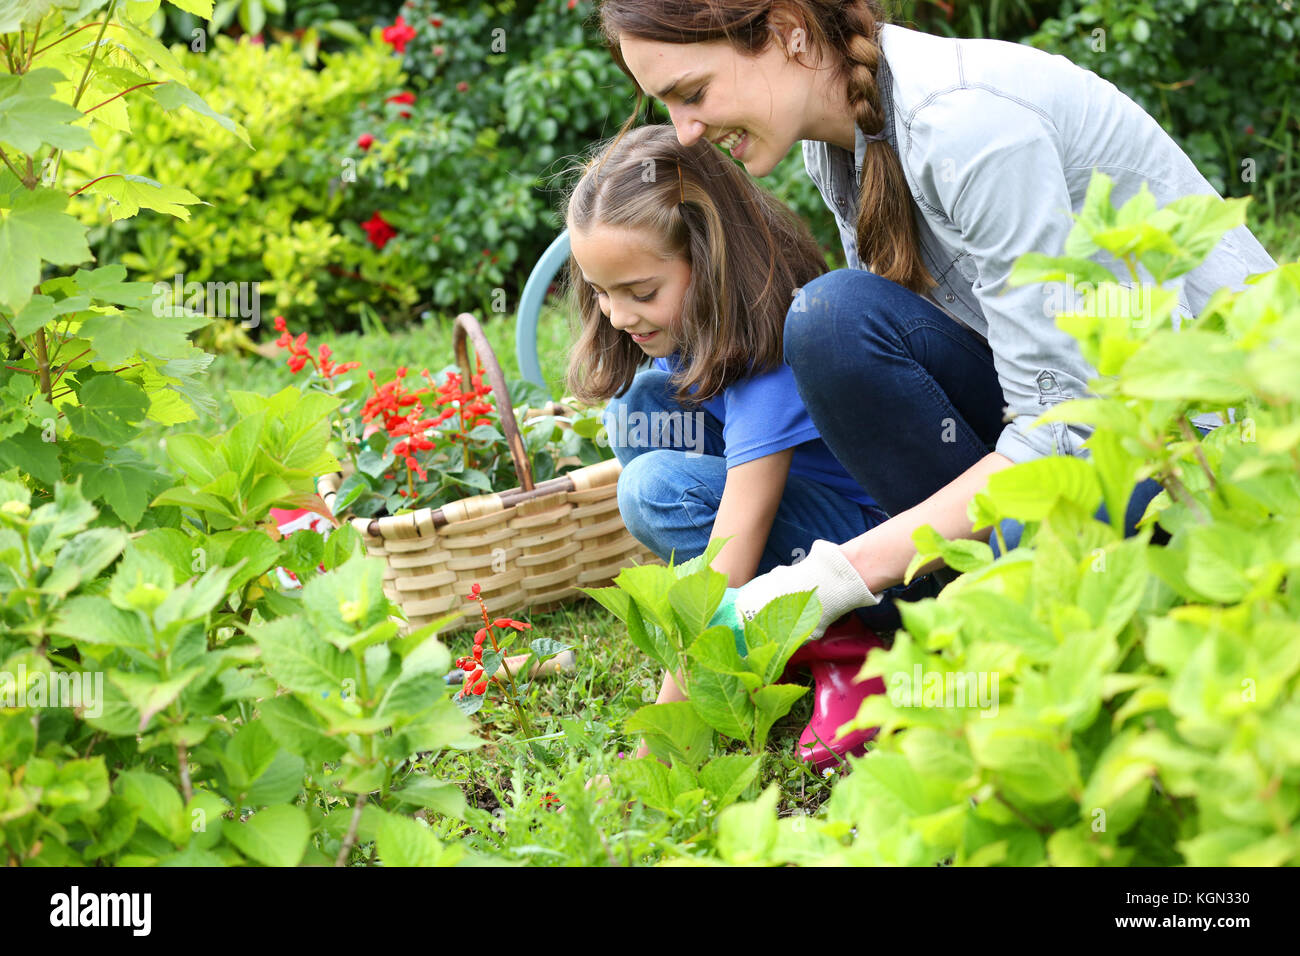 Little girl helping her mother to do gardening - Stock Image